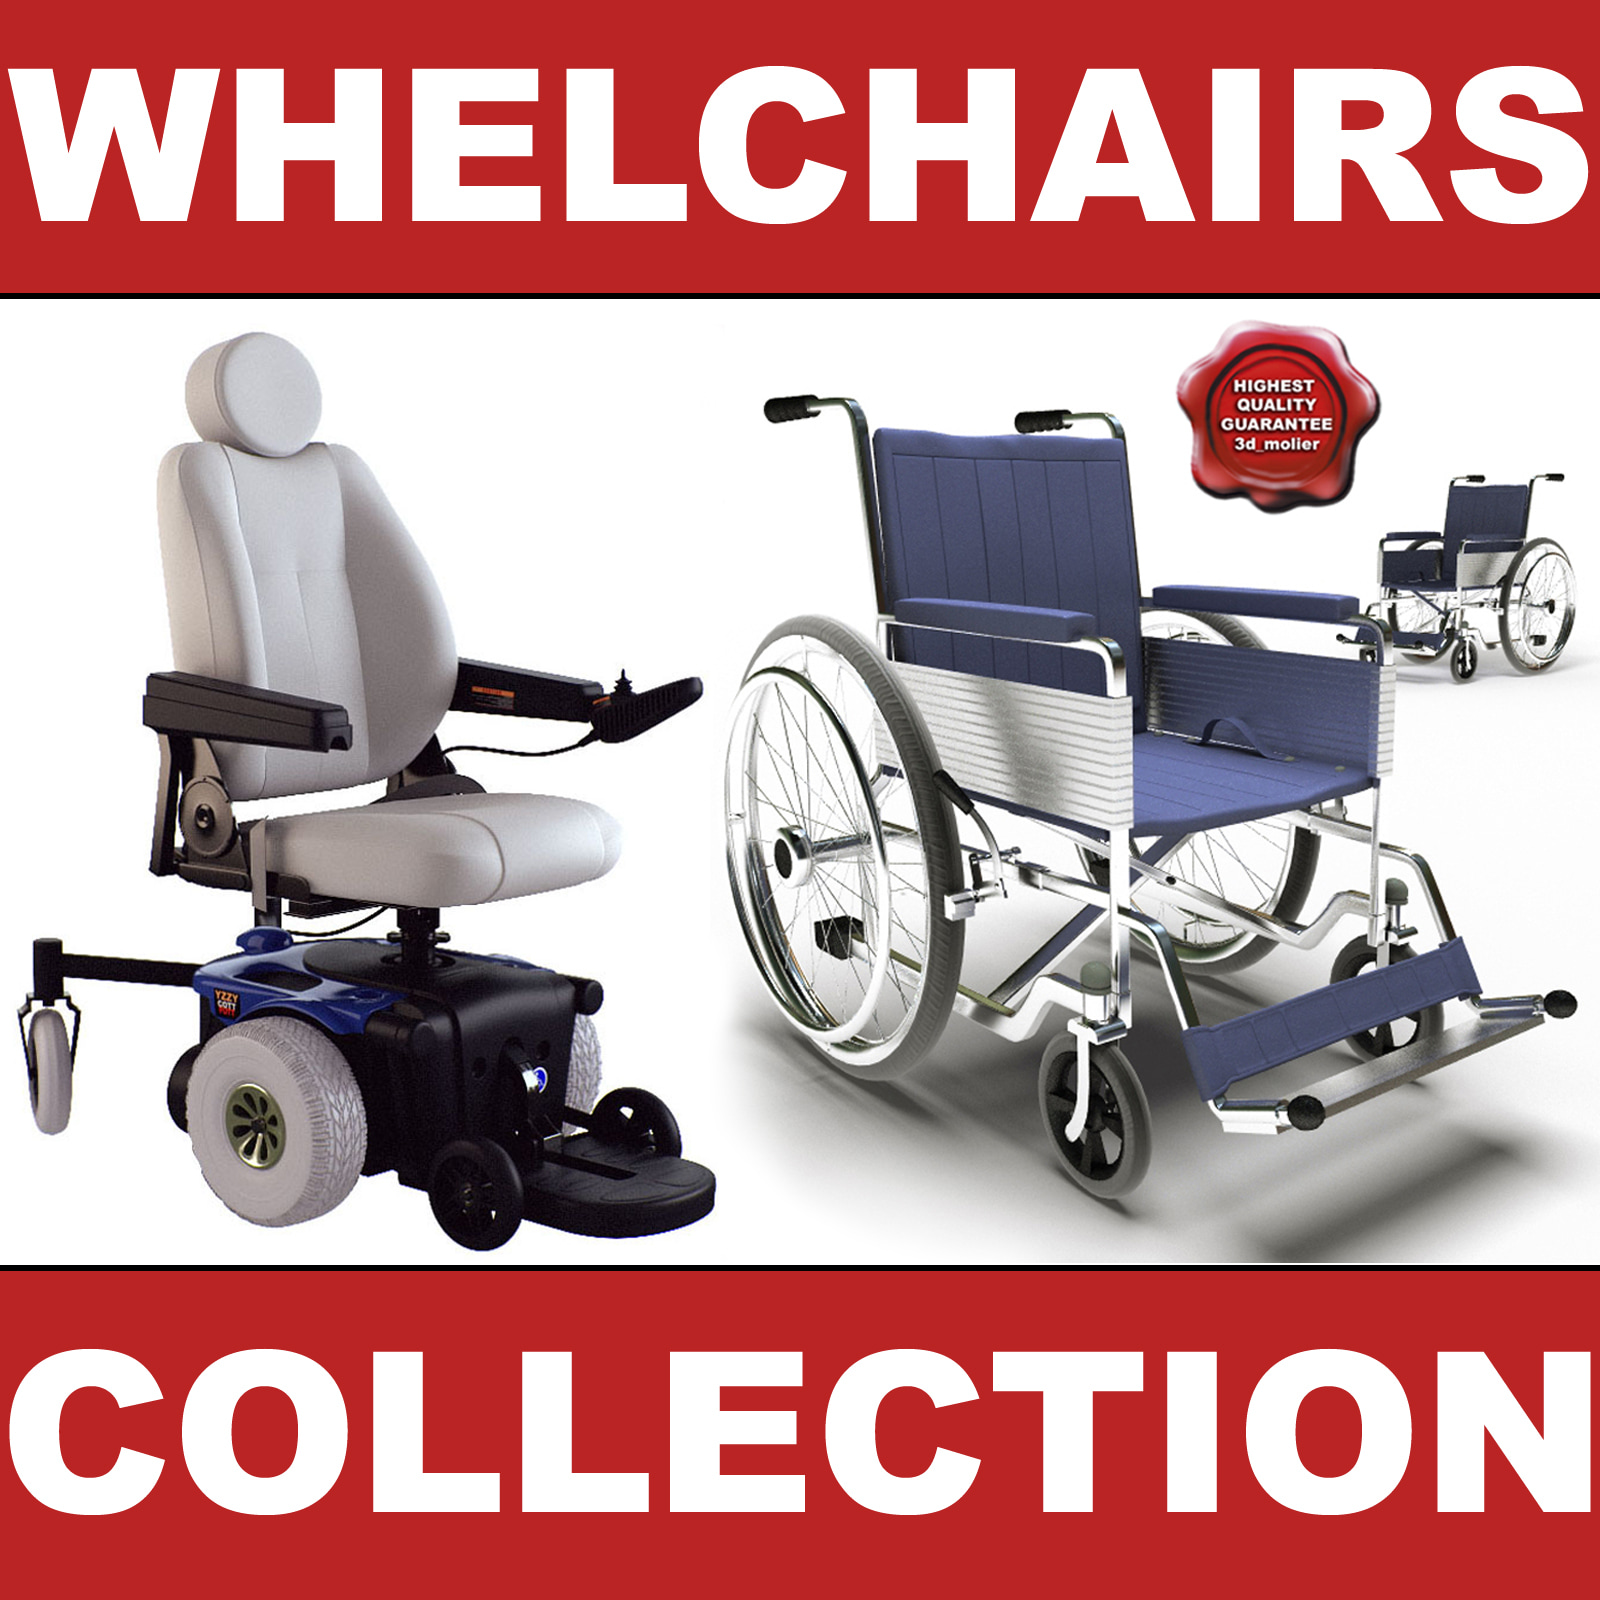 Wheelchairs_Collection_00.jpg